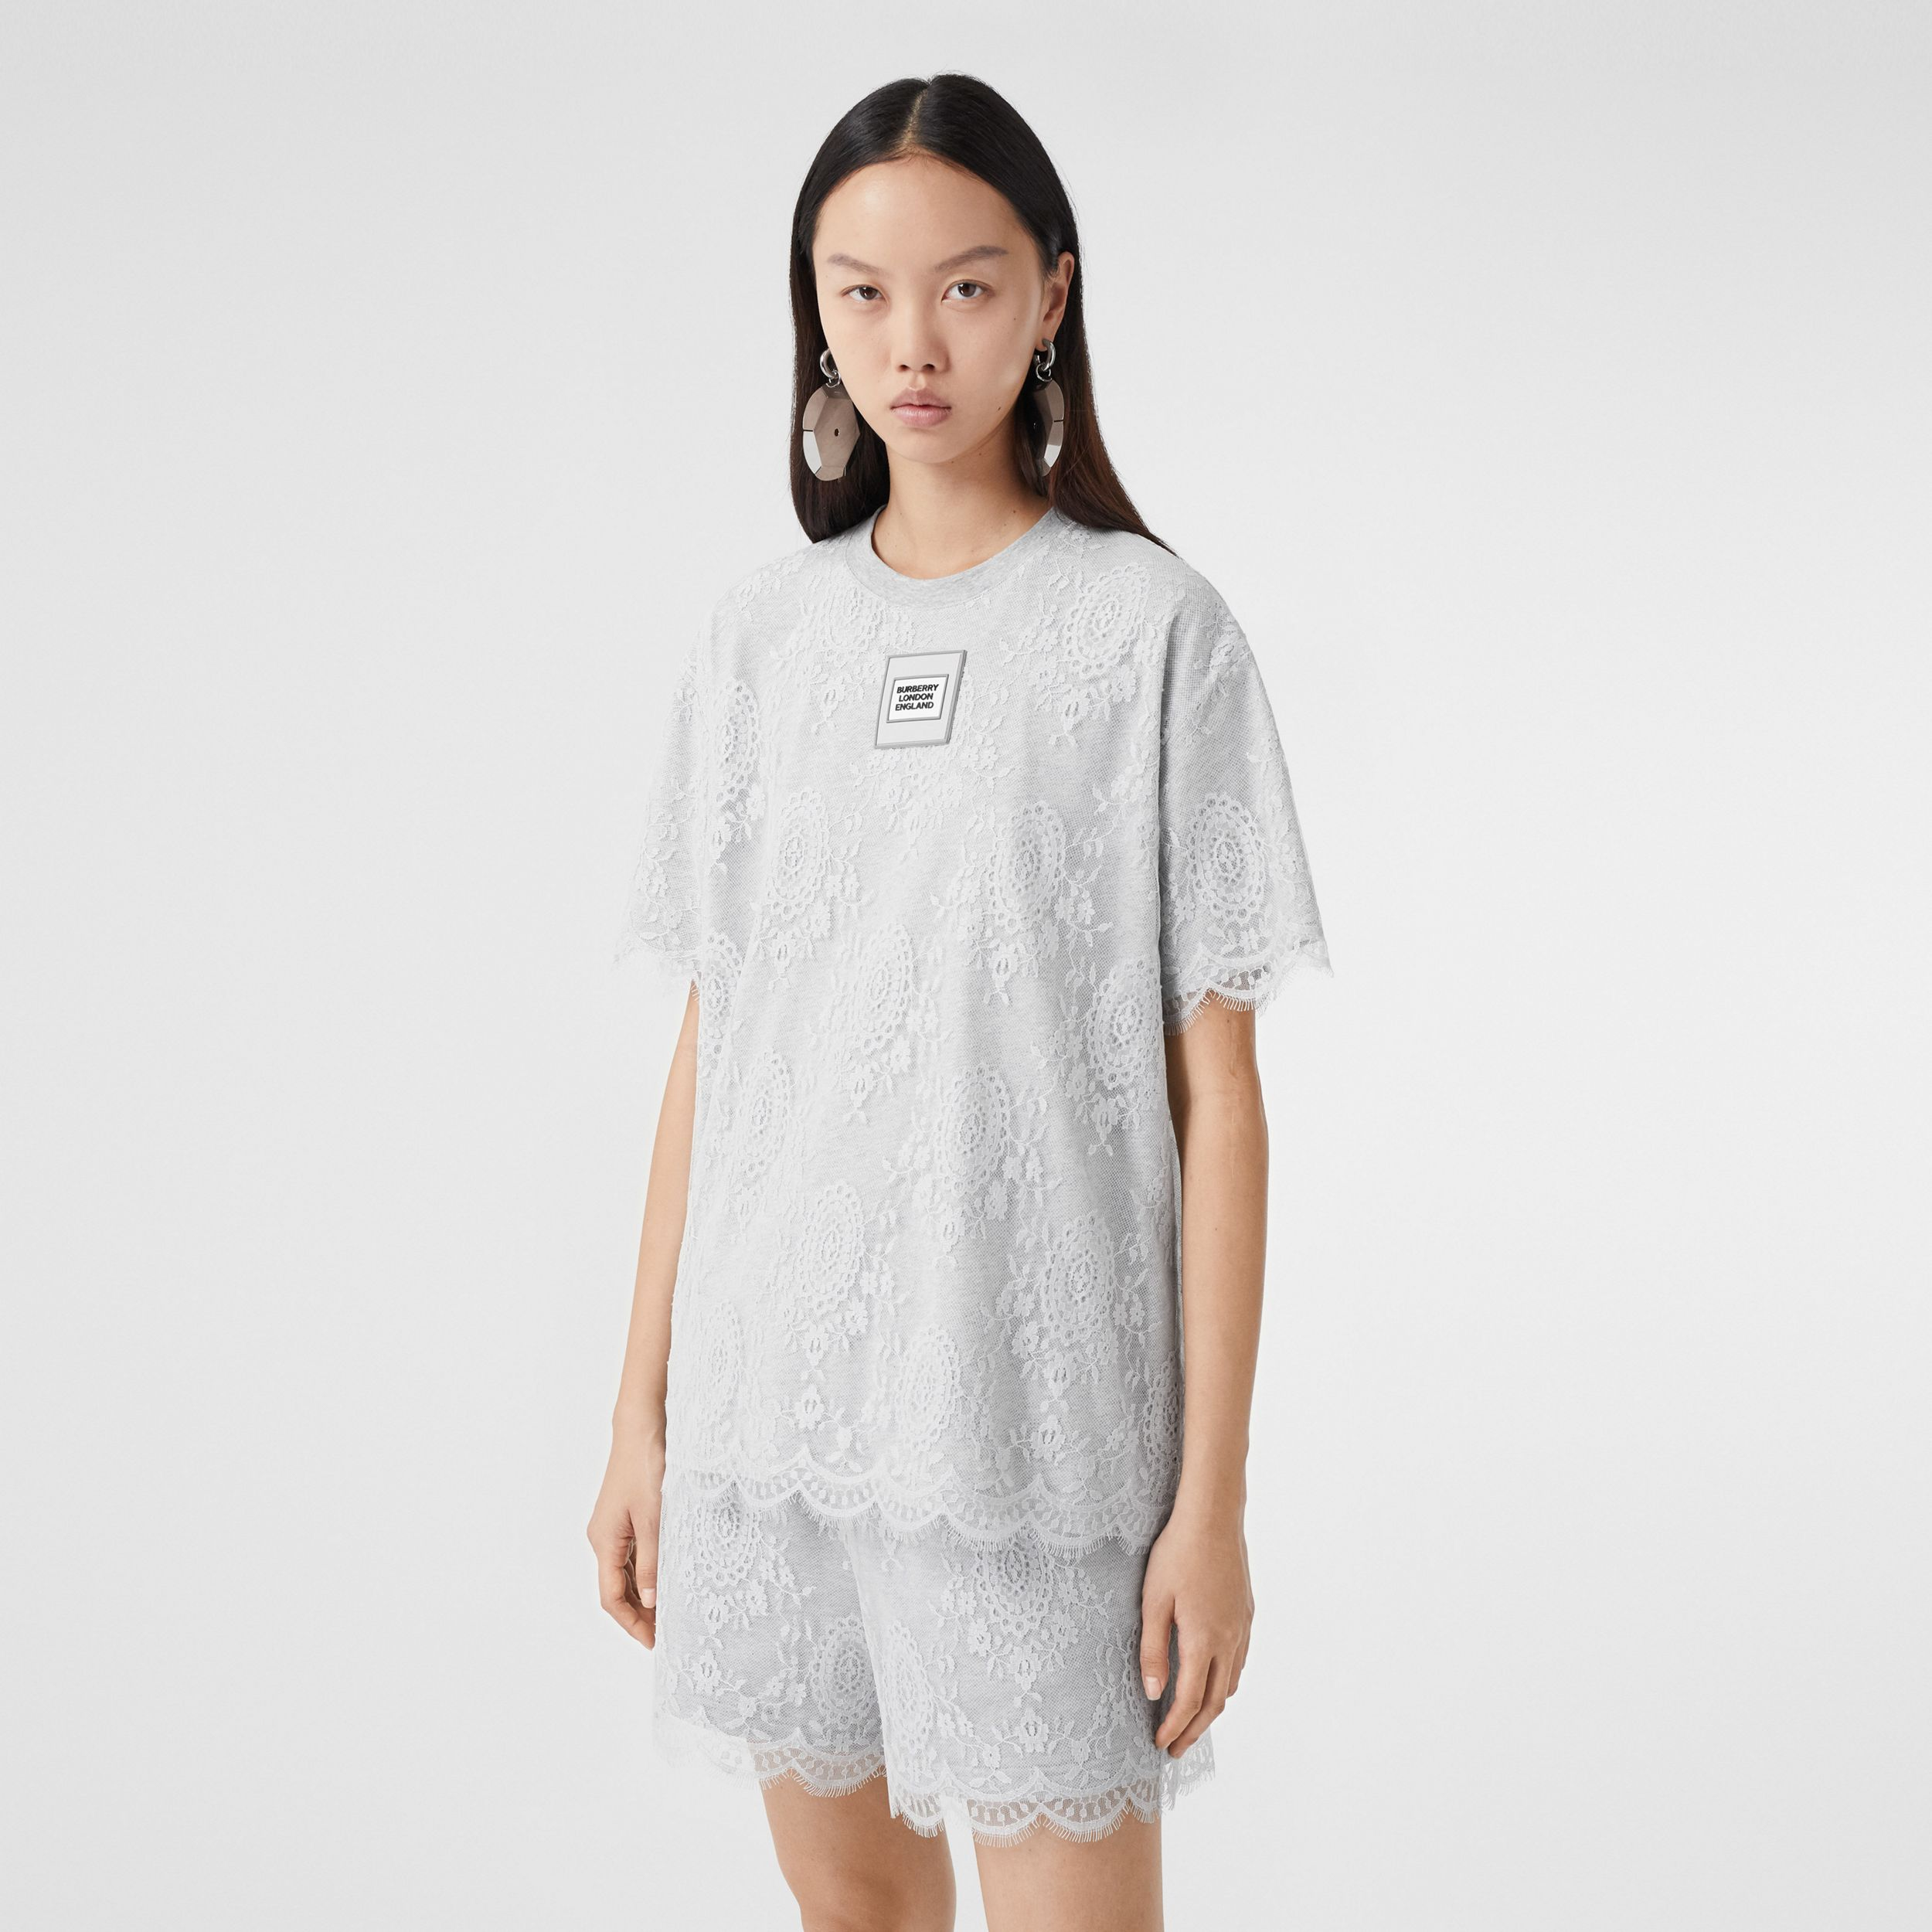 Logo Appliqué Lace Oversized T-shirt in Light Pebble Grey - Women | Burberry - 1